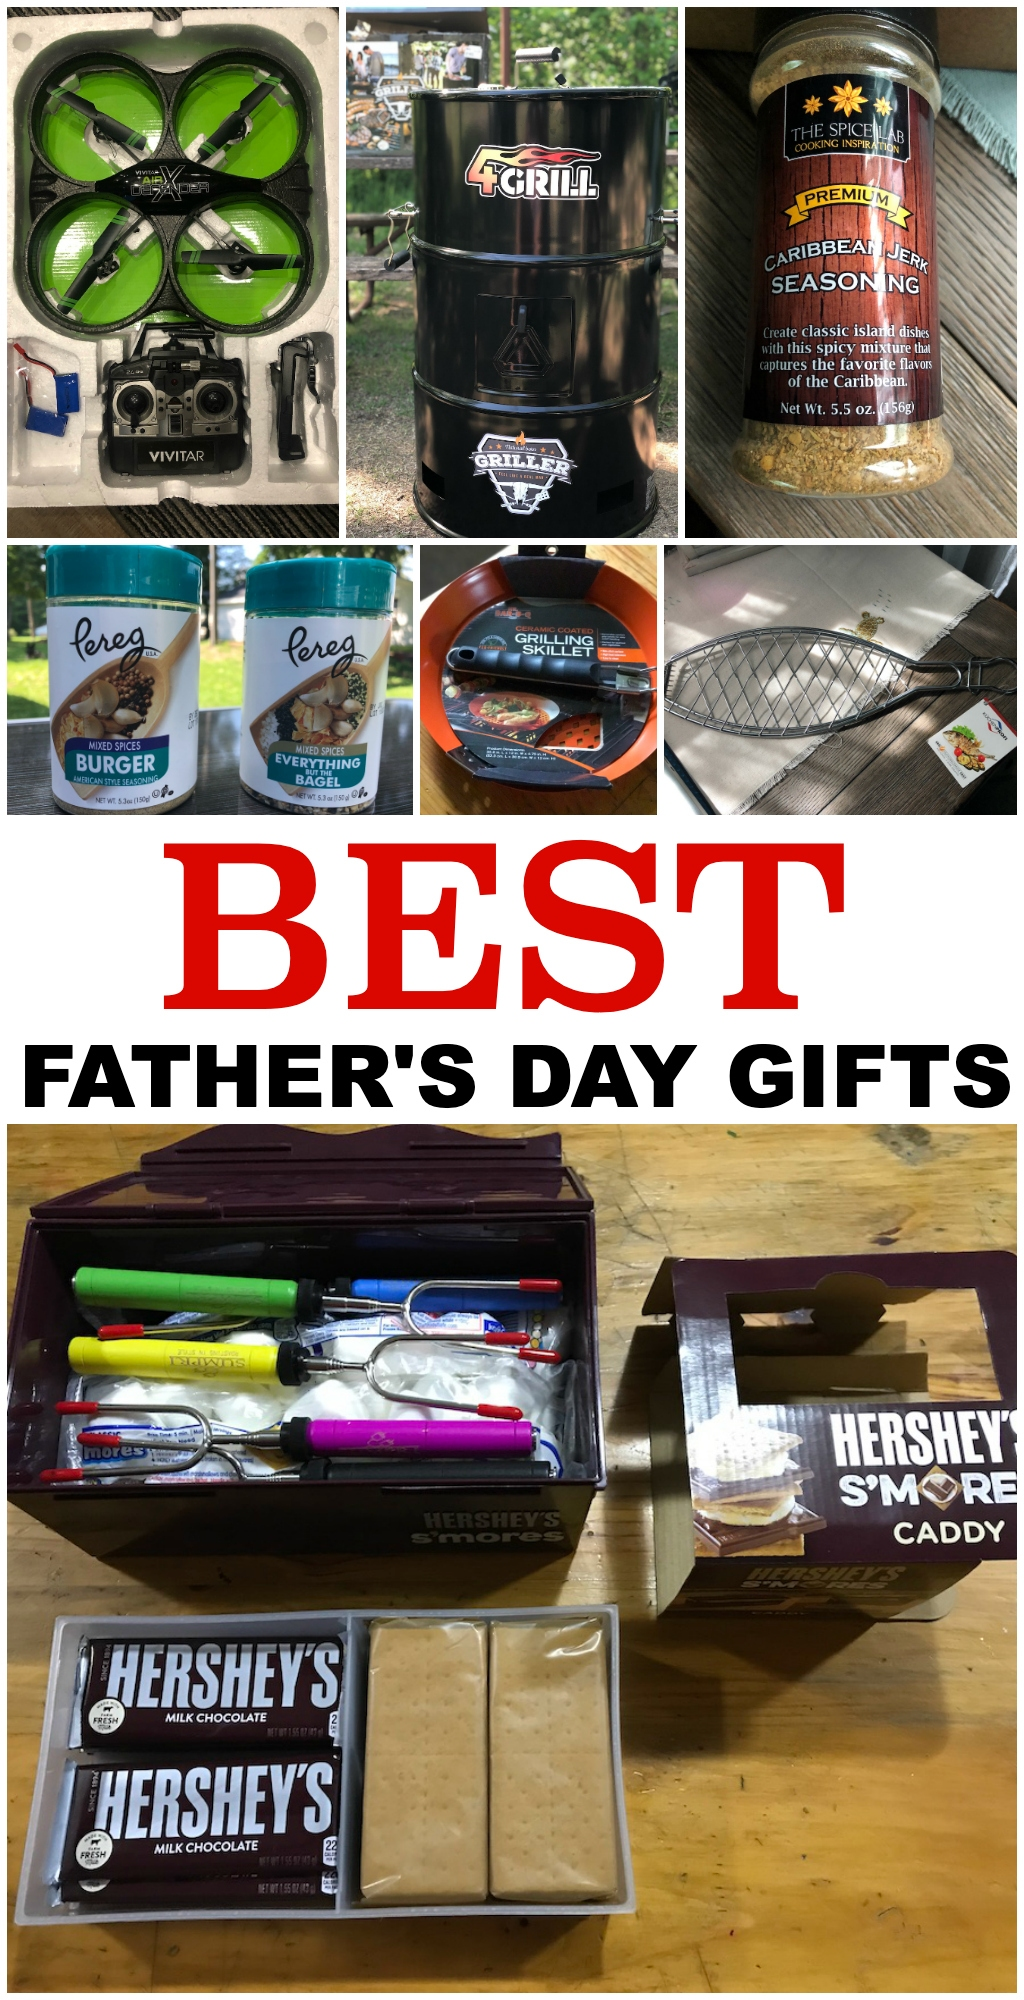 Don't settle for a tie, socks or underwear for your dad this year. These Fathers Day Gifts are top of the line and he is sure to love.